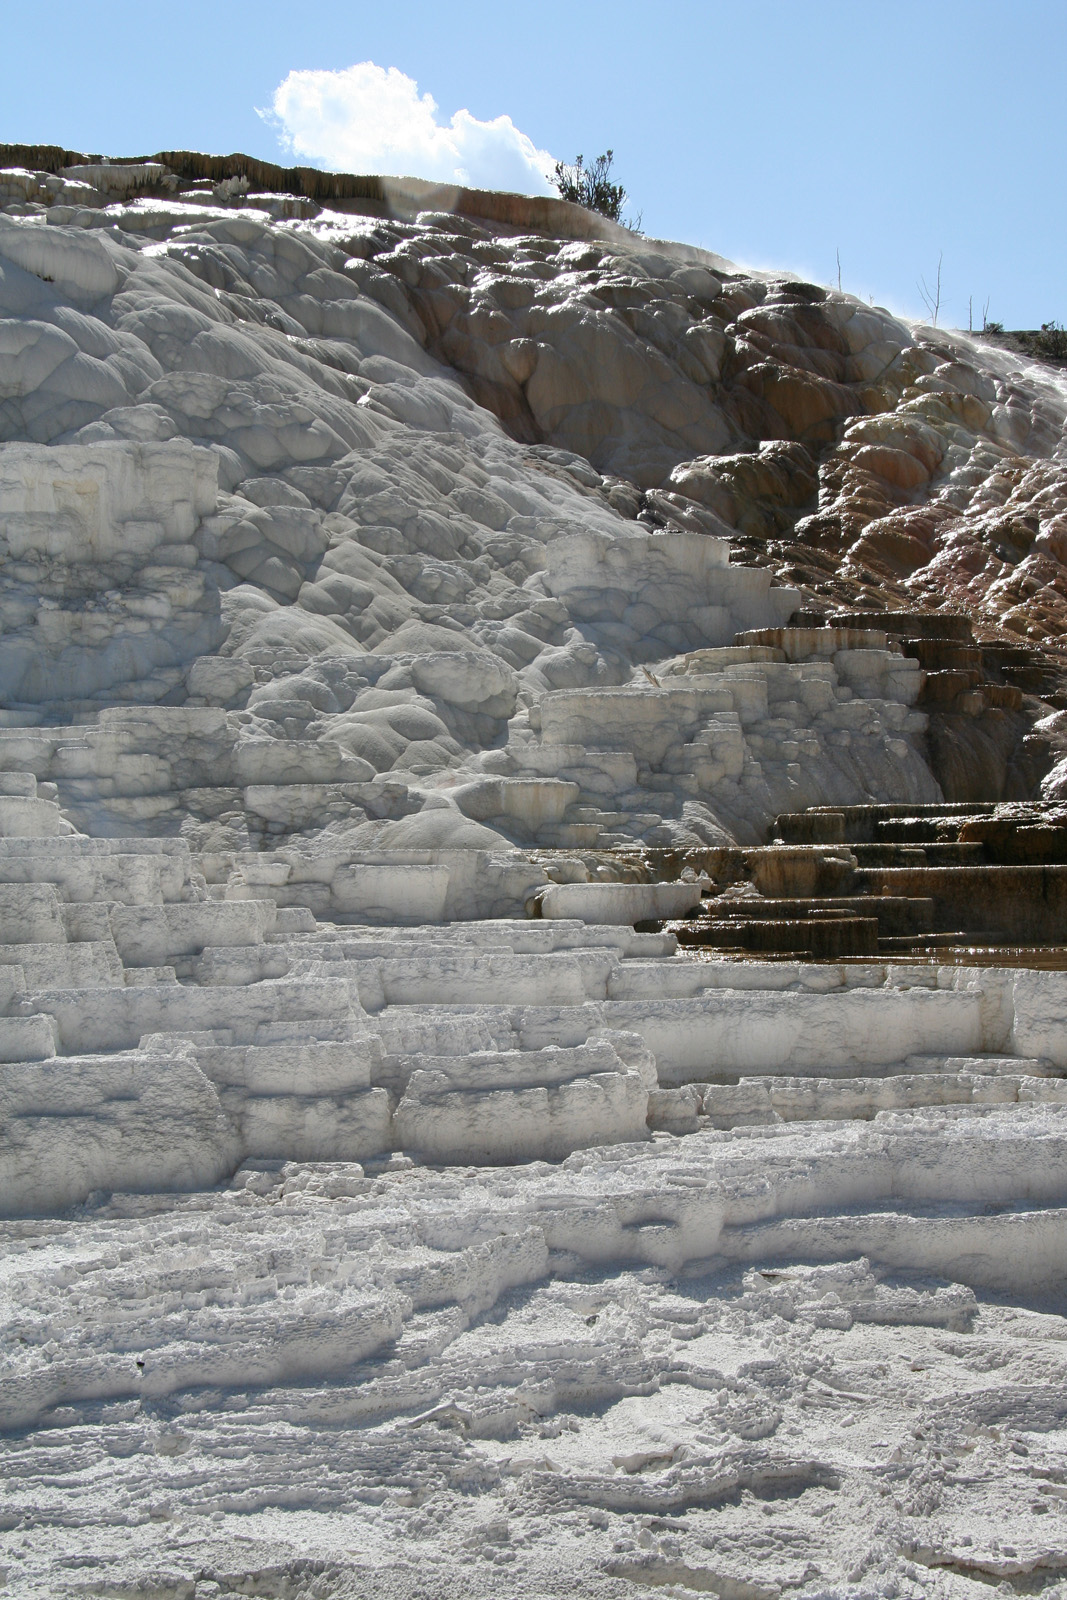 yellowstone national park adult sex dating Yellowstone national park's best 100% free gay dating site want to meet single gay men in yellowstone national park, wyoming mingle2's gay yellowstone national park personals are the free and easy way to find other yellowstone national park gay singles looking for dates, boyfriends, sex, or friends.